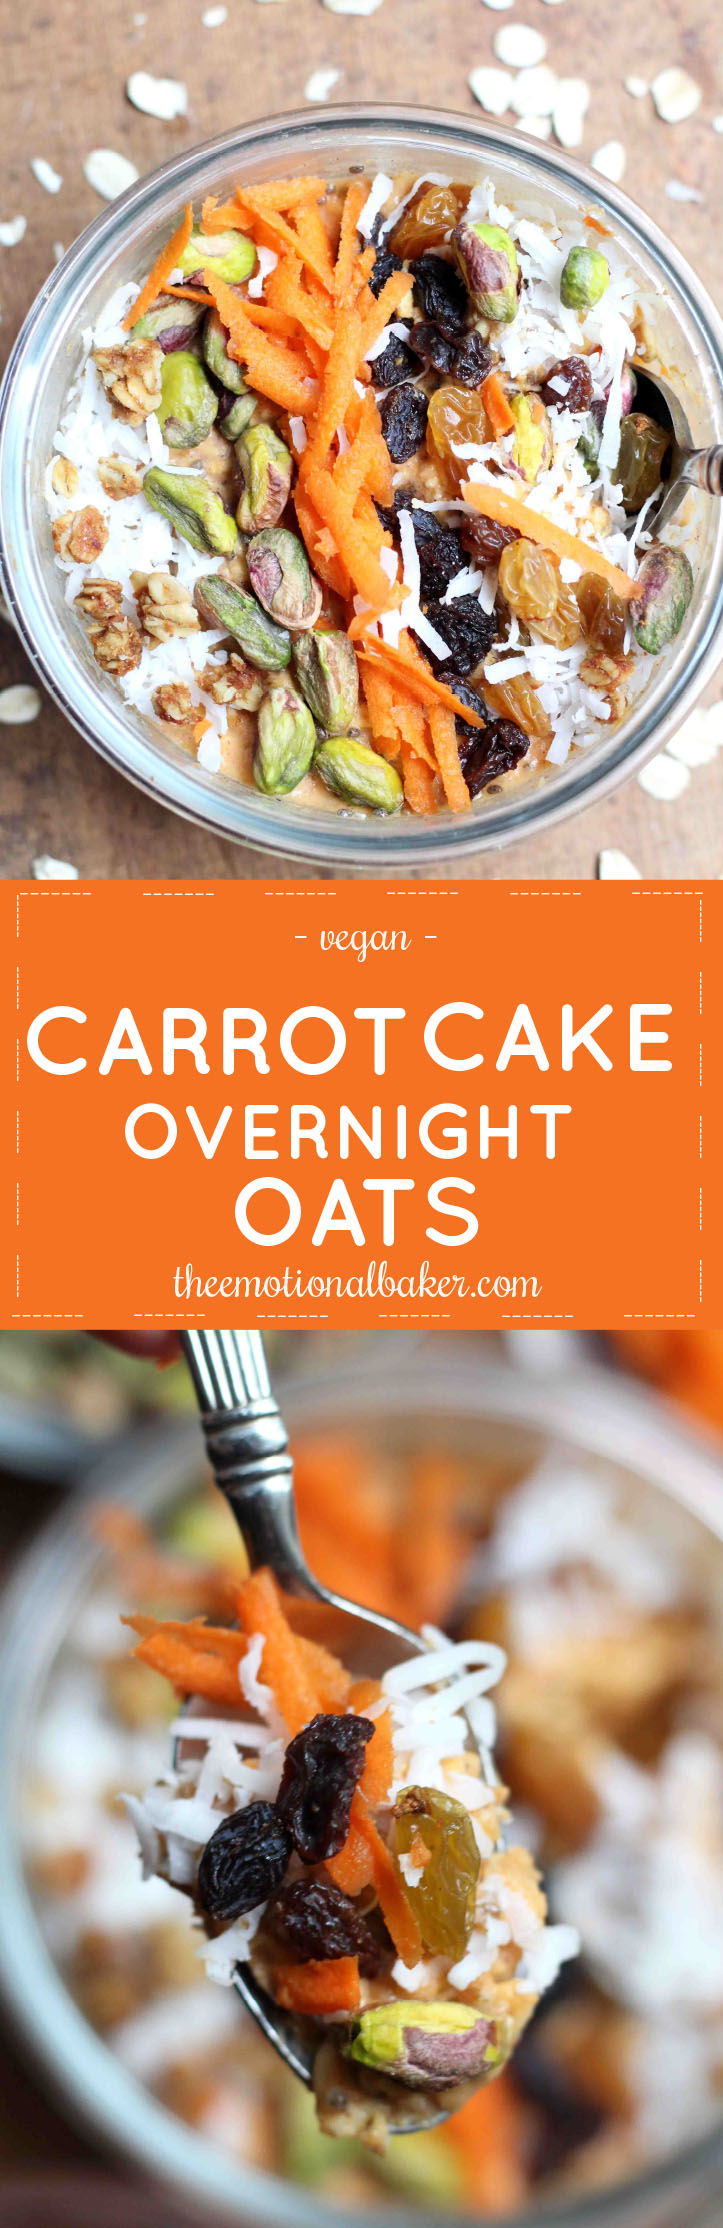 Carrot Cake for breakfast? Yes, Please! These overnight oats are bursting with flavor and will energize your mornings.